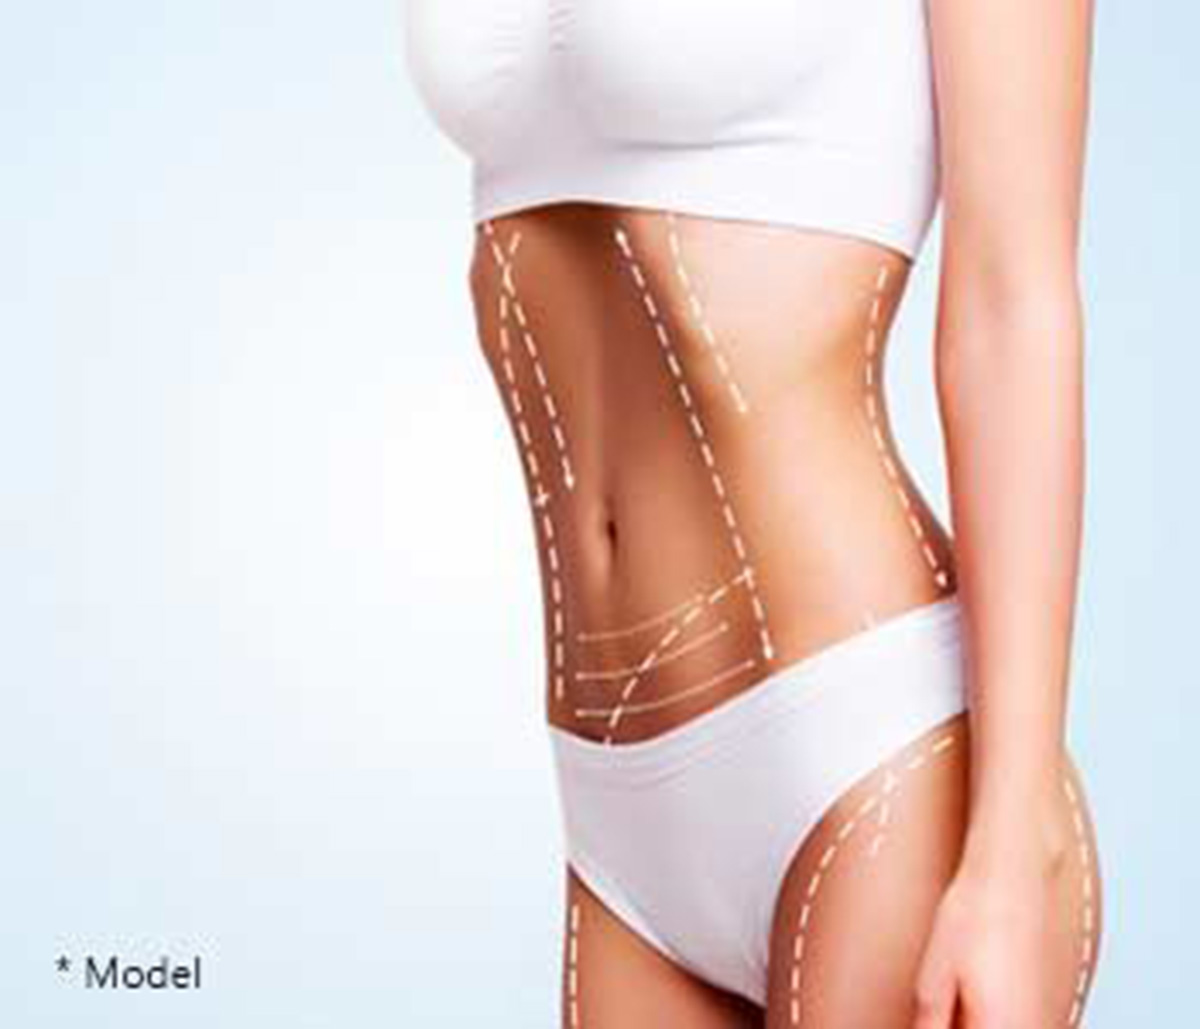 Plastic Surgeon in Beverly Hills Explains the Benefits of Liposuction